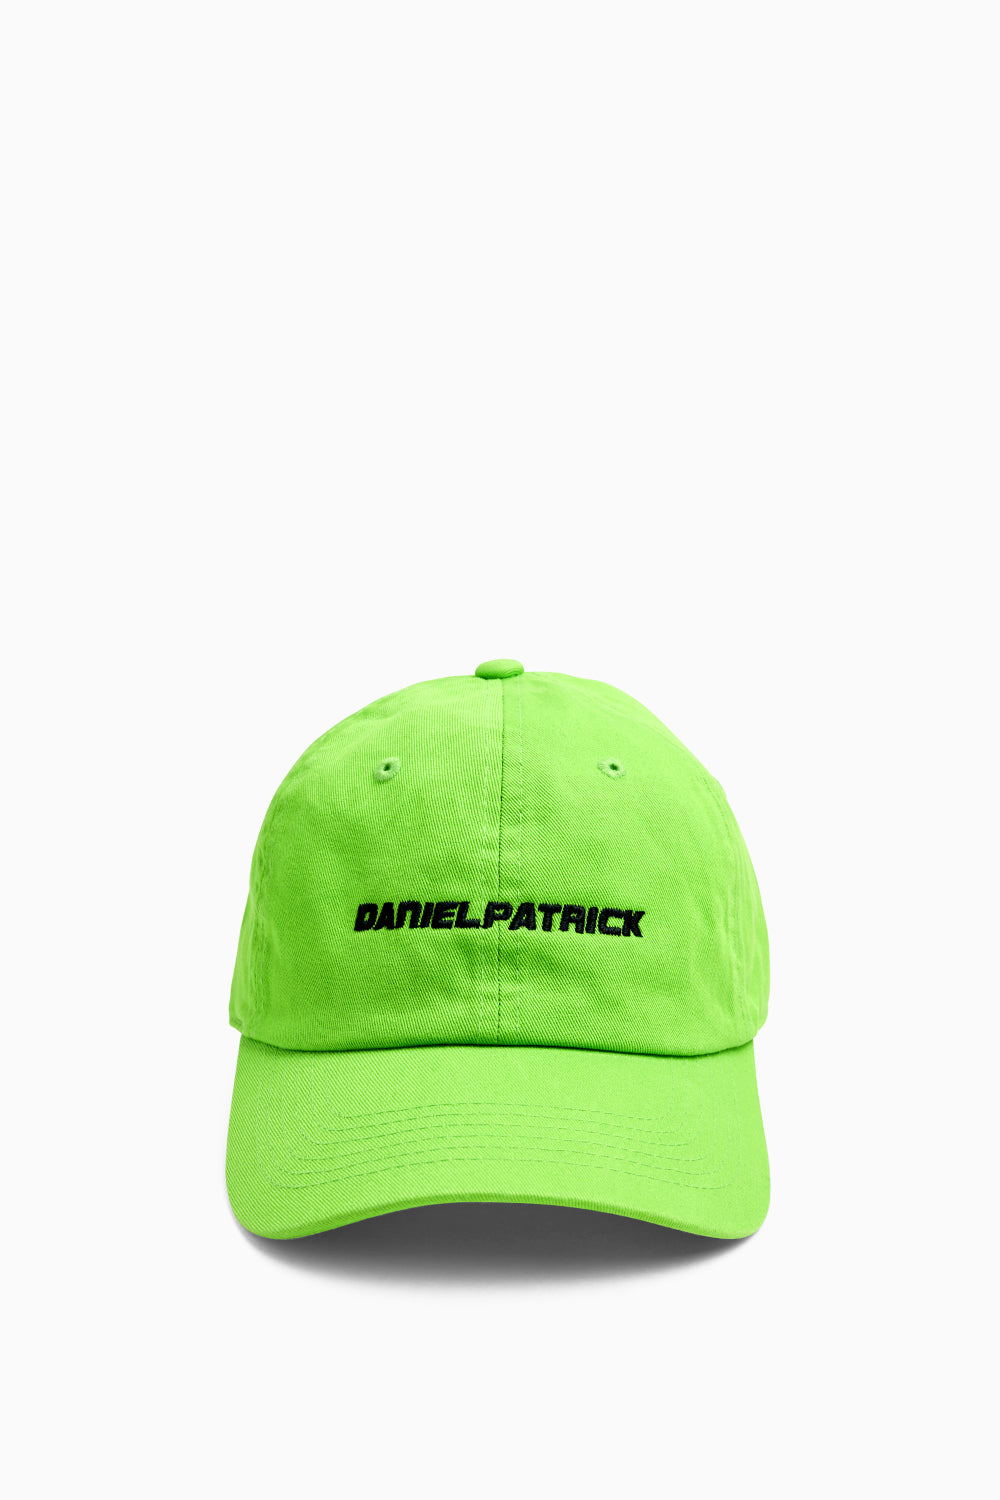 DP sport cap in lime/black by daniel patrick